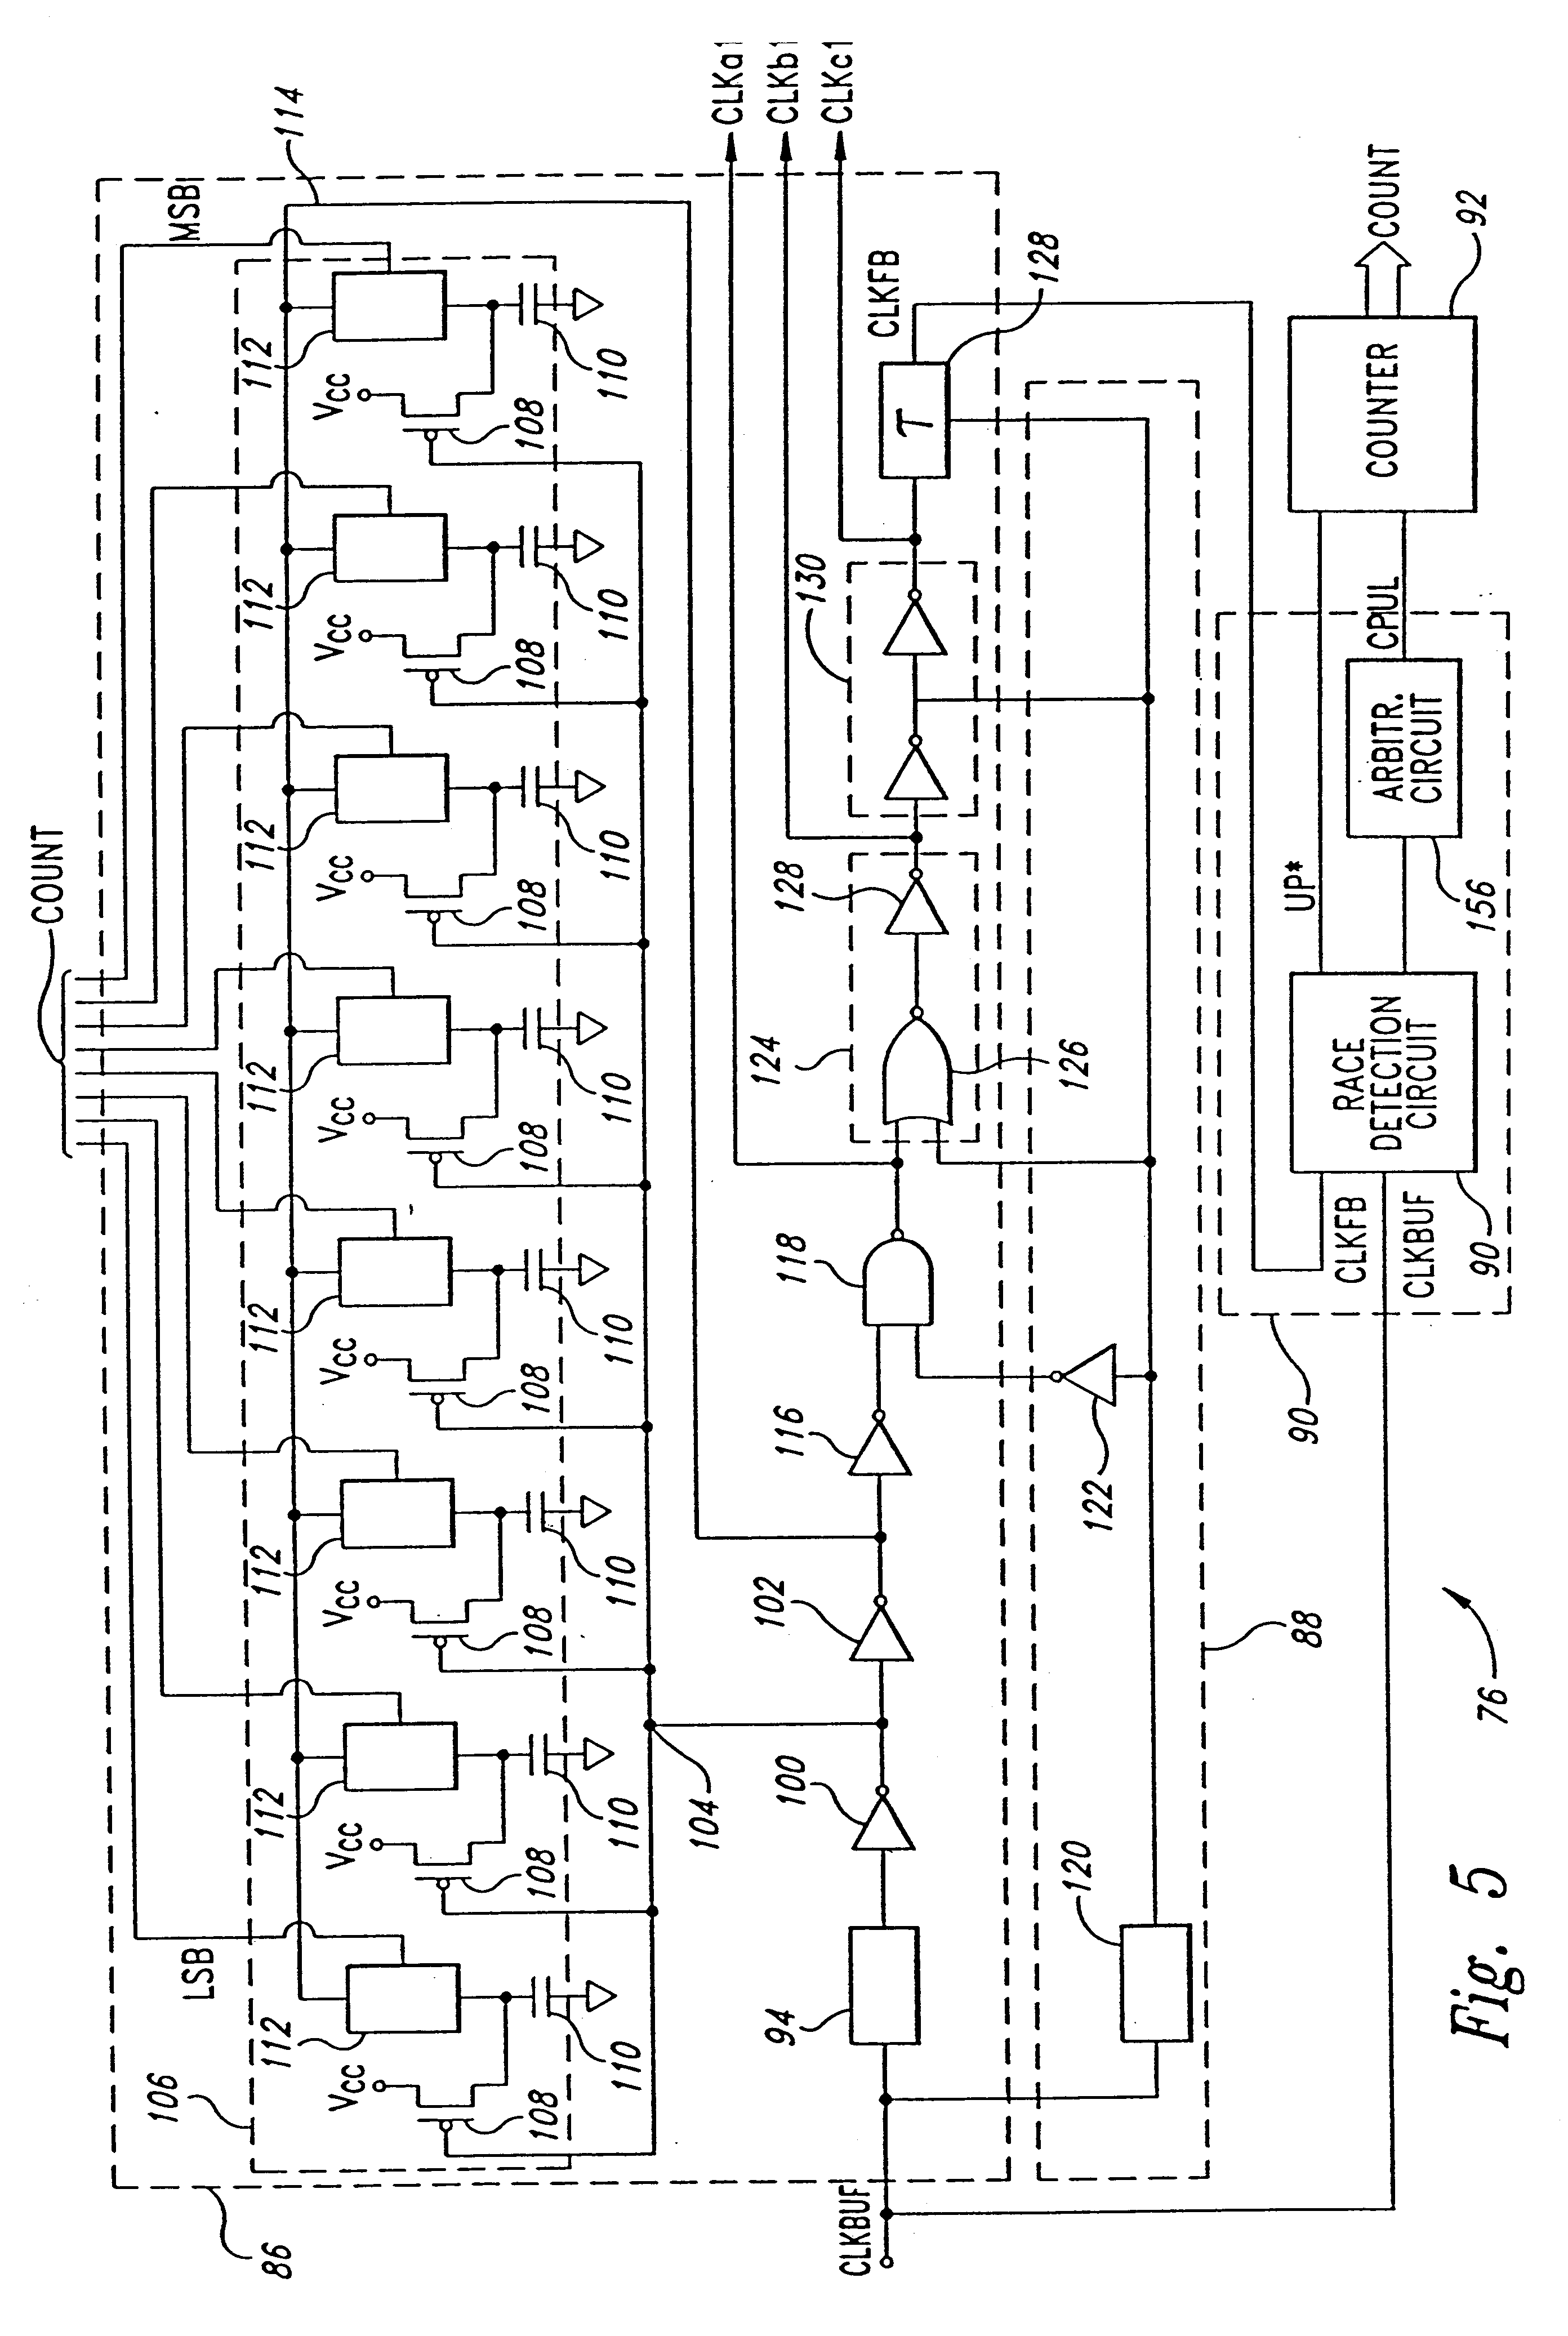 """delay locked loop thesis Thesis this thesis of tyler j gomm, submitted for the degree of master of science with a major in electrical engineering and titled """"design of a delay- locked loop with a dac-controlled analog delay line,"""" has been reviewed in final form permission, as indicated by the signatures and dates given below, is now."""